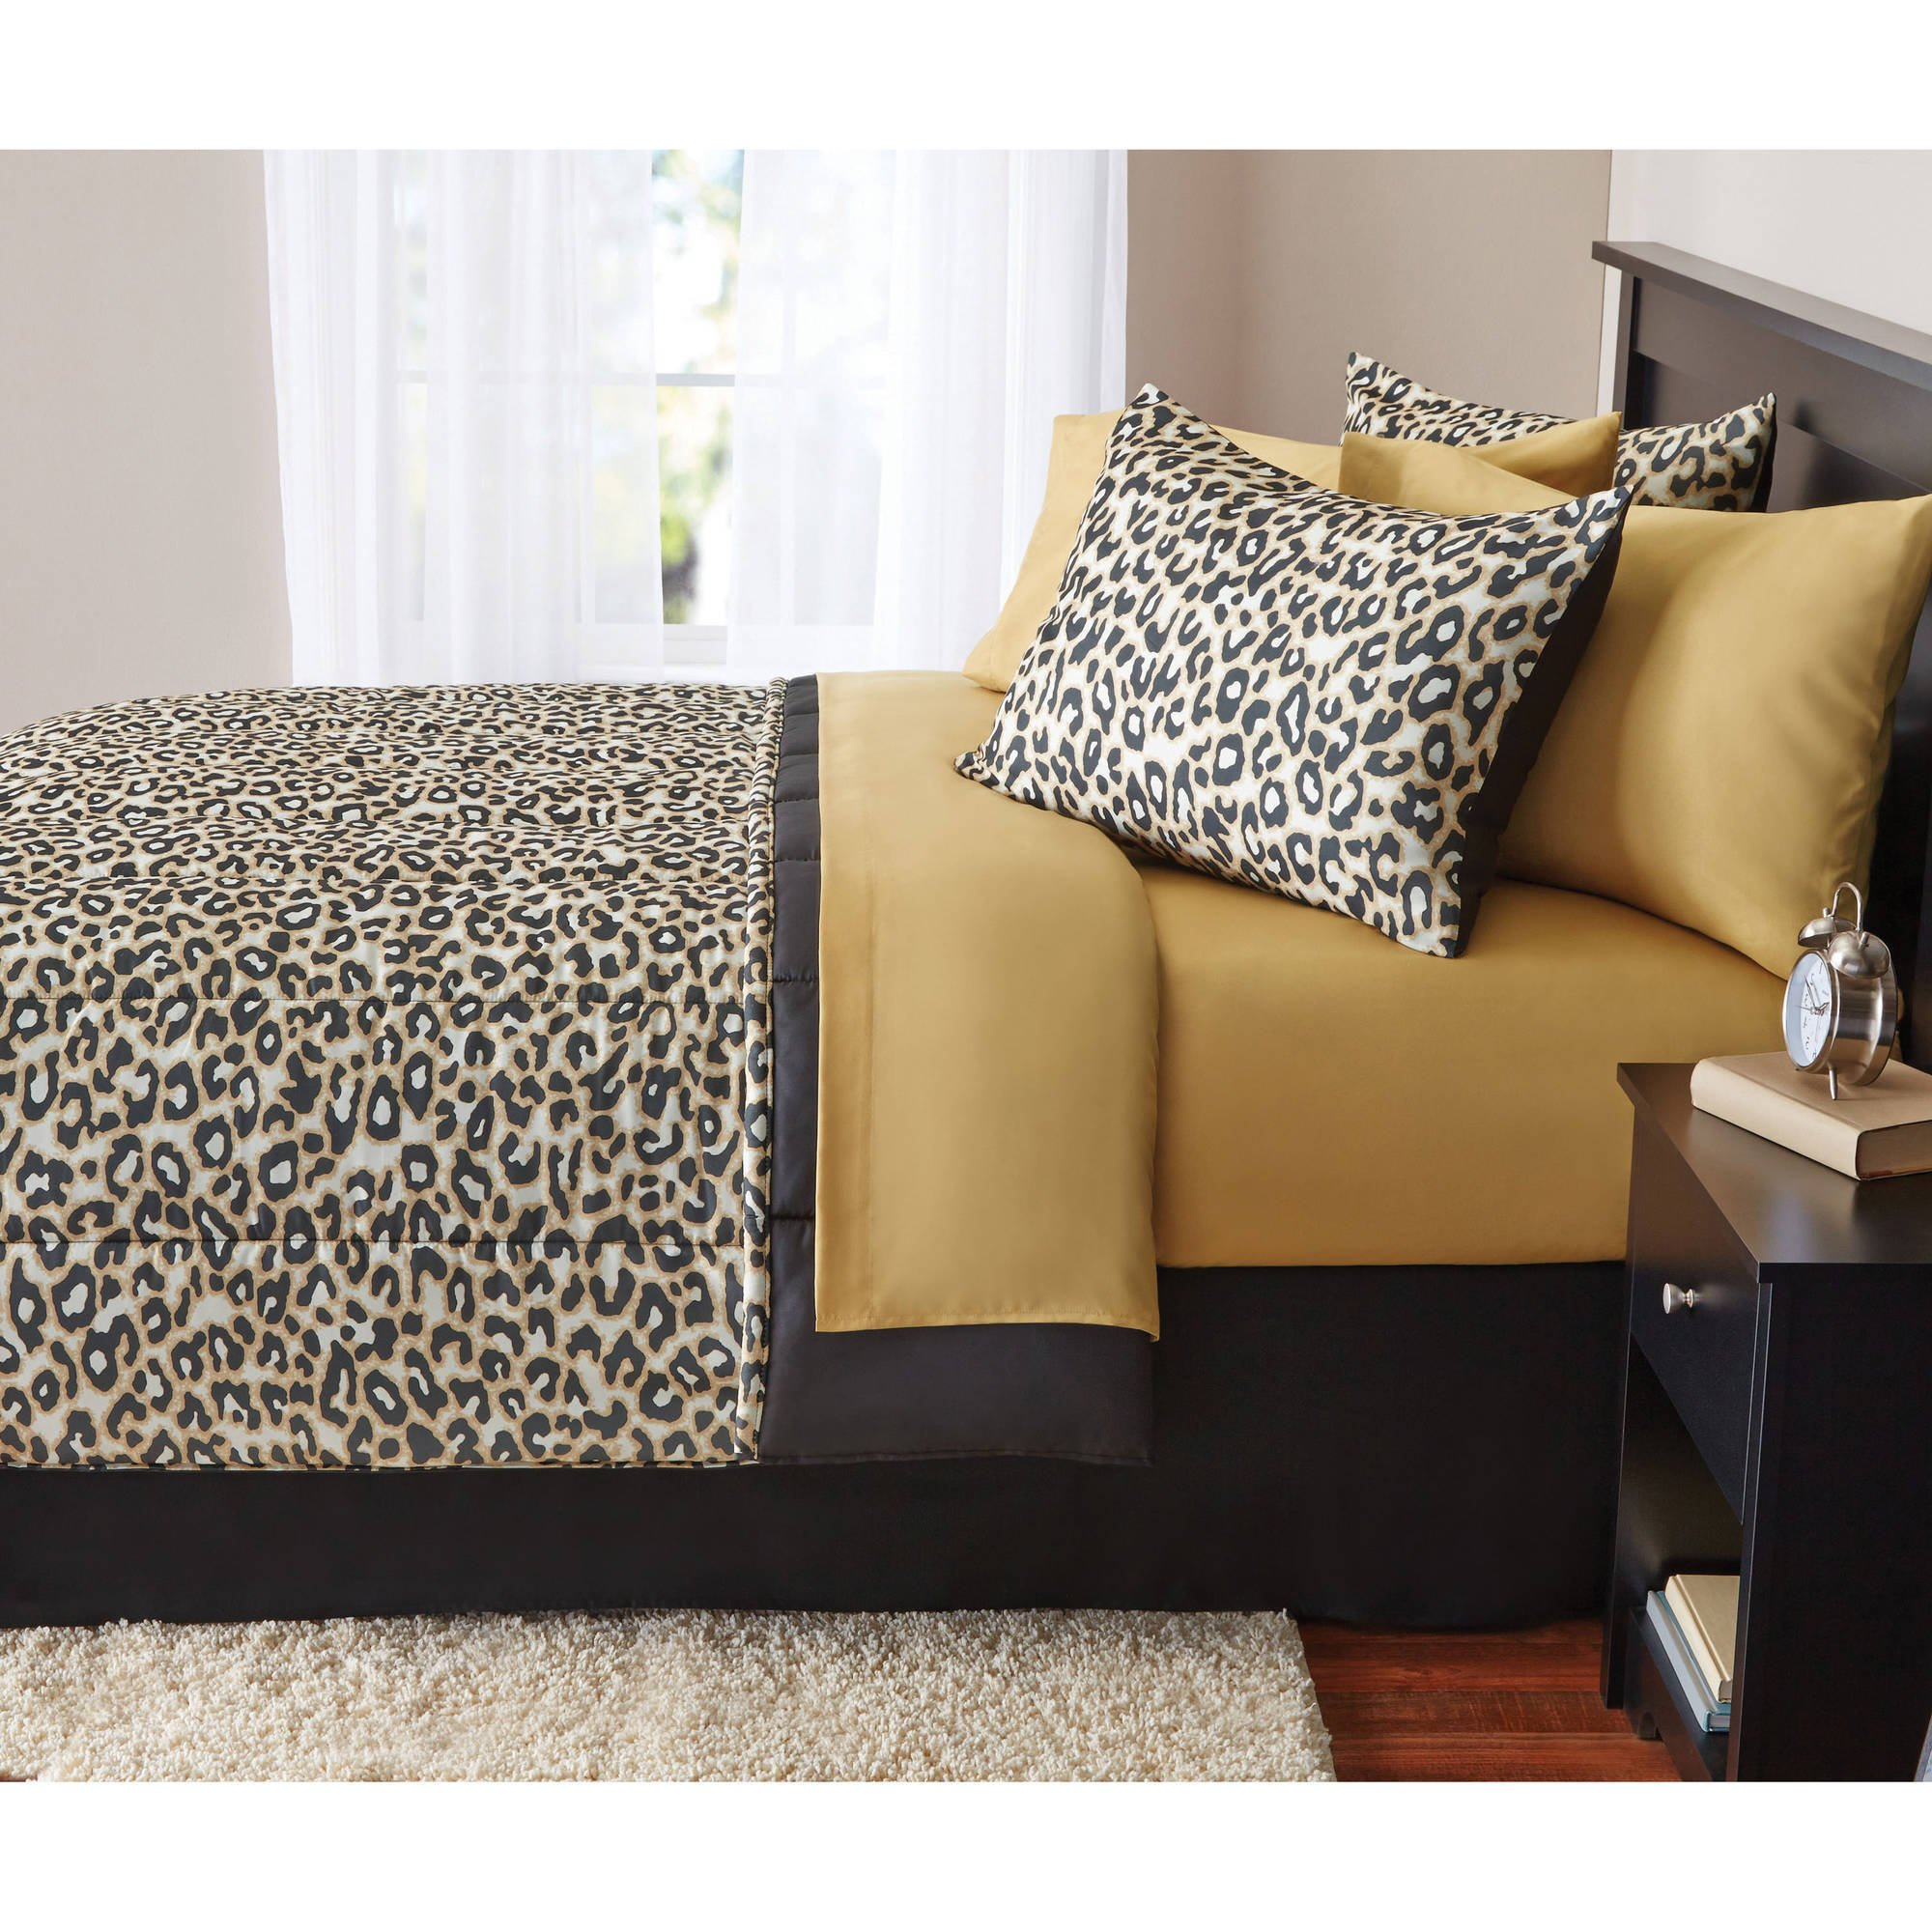 8 Piece Boys Tan Brown Cheetah Print comforters Queen Set With Sheets, Black Leopard Printed Pattern, Wild Animal Zoo Jungle Safari Themed Reversible Solid Color Kids Bedding Teen Bedroom, Polyester